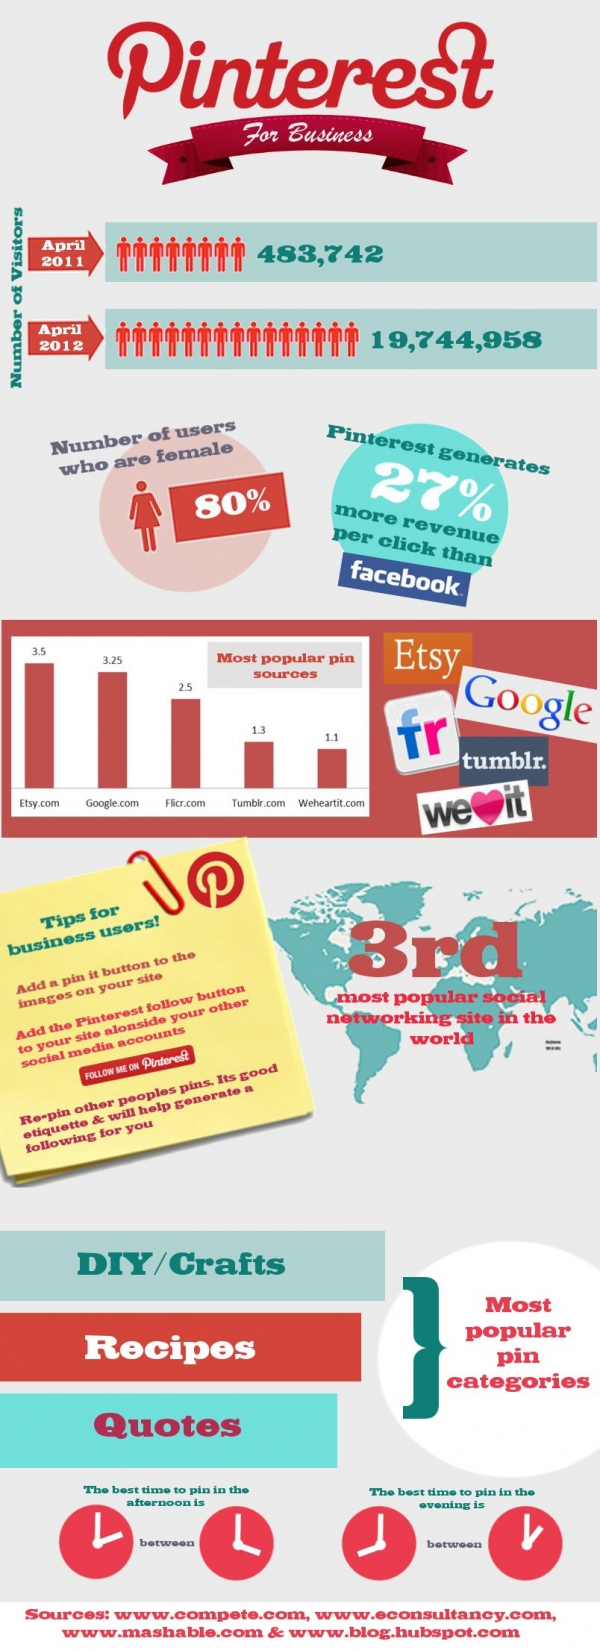 Pinterest Statistics Infographic | Imagine That Creative Marketing and PR